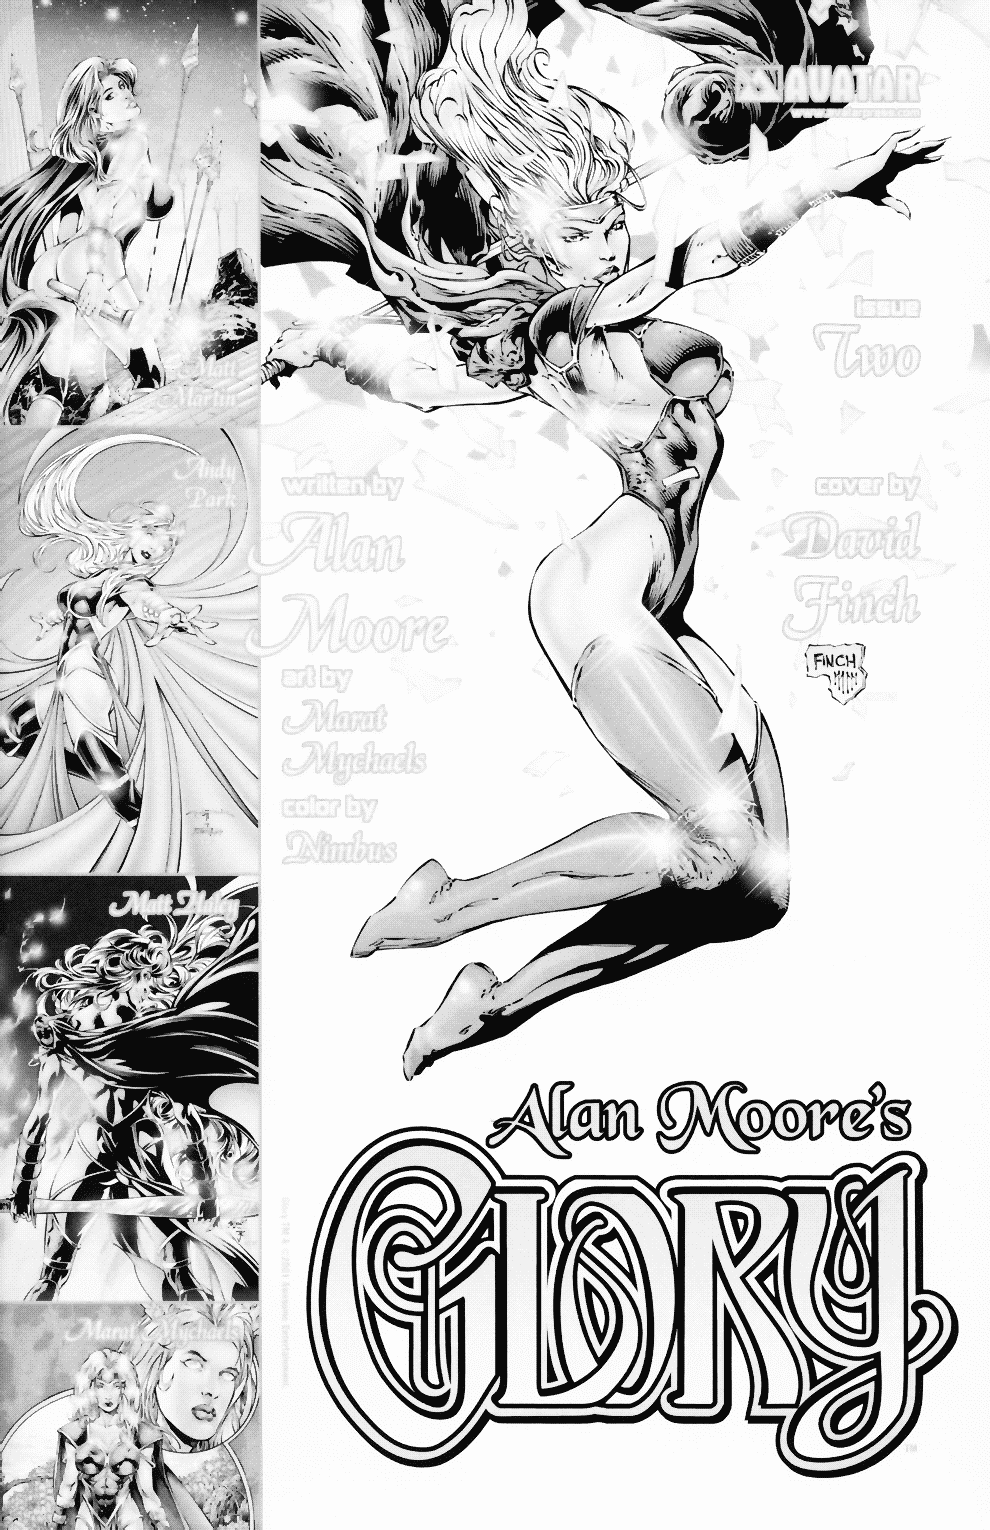 Read online Alan Moore's Glory comic -  Issue #0 - 33